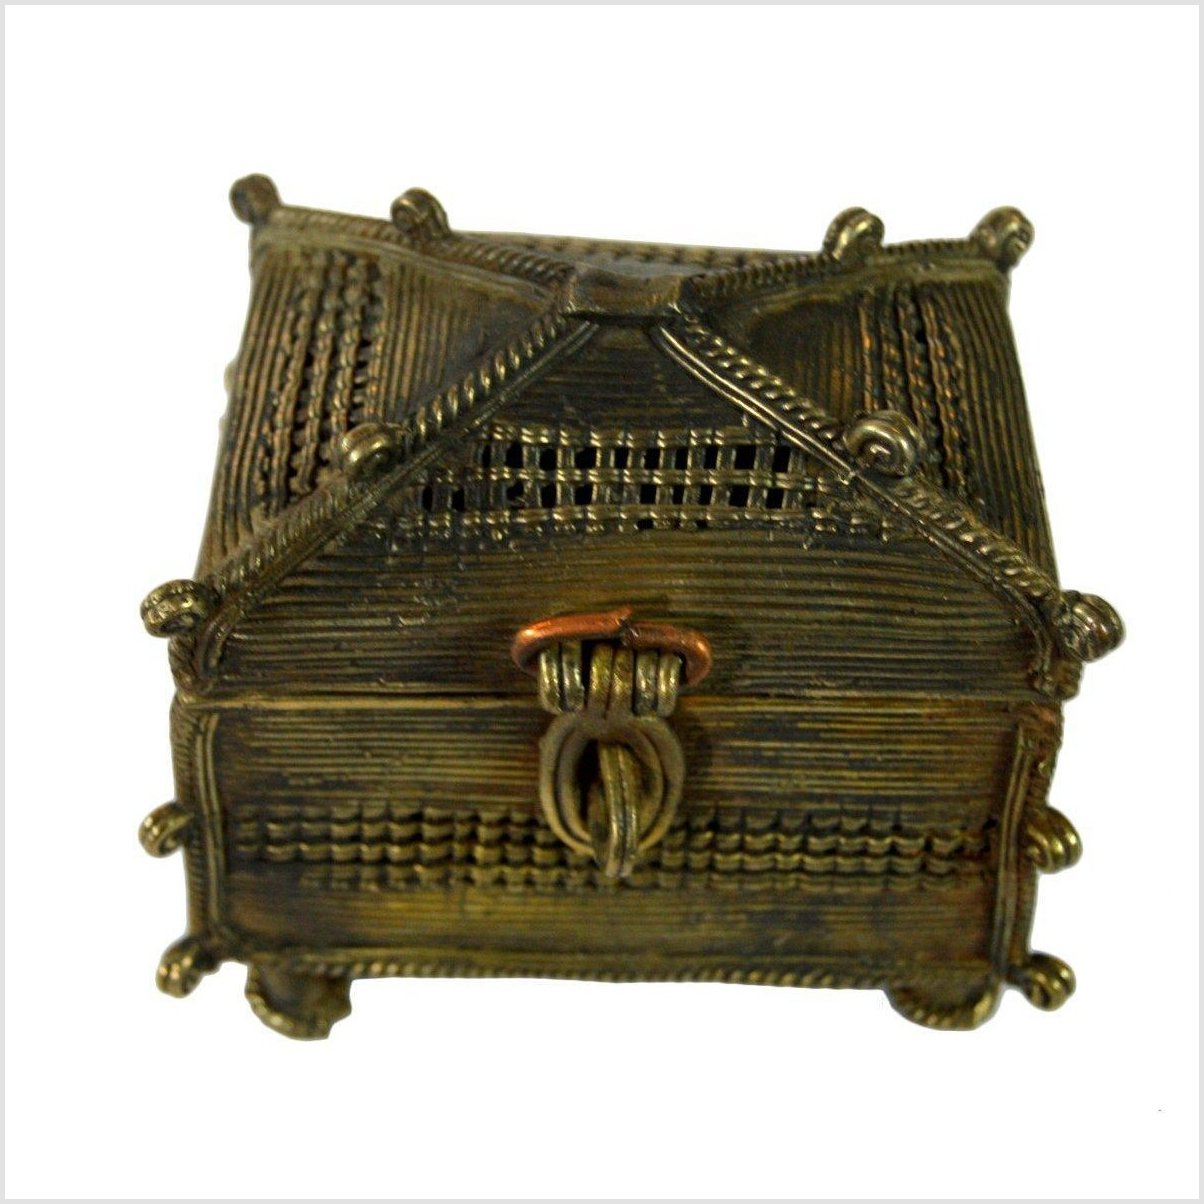 Orissa Miniature Treasure Box